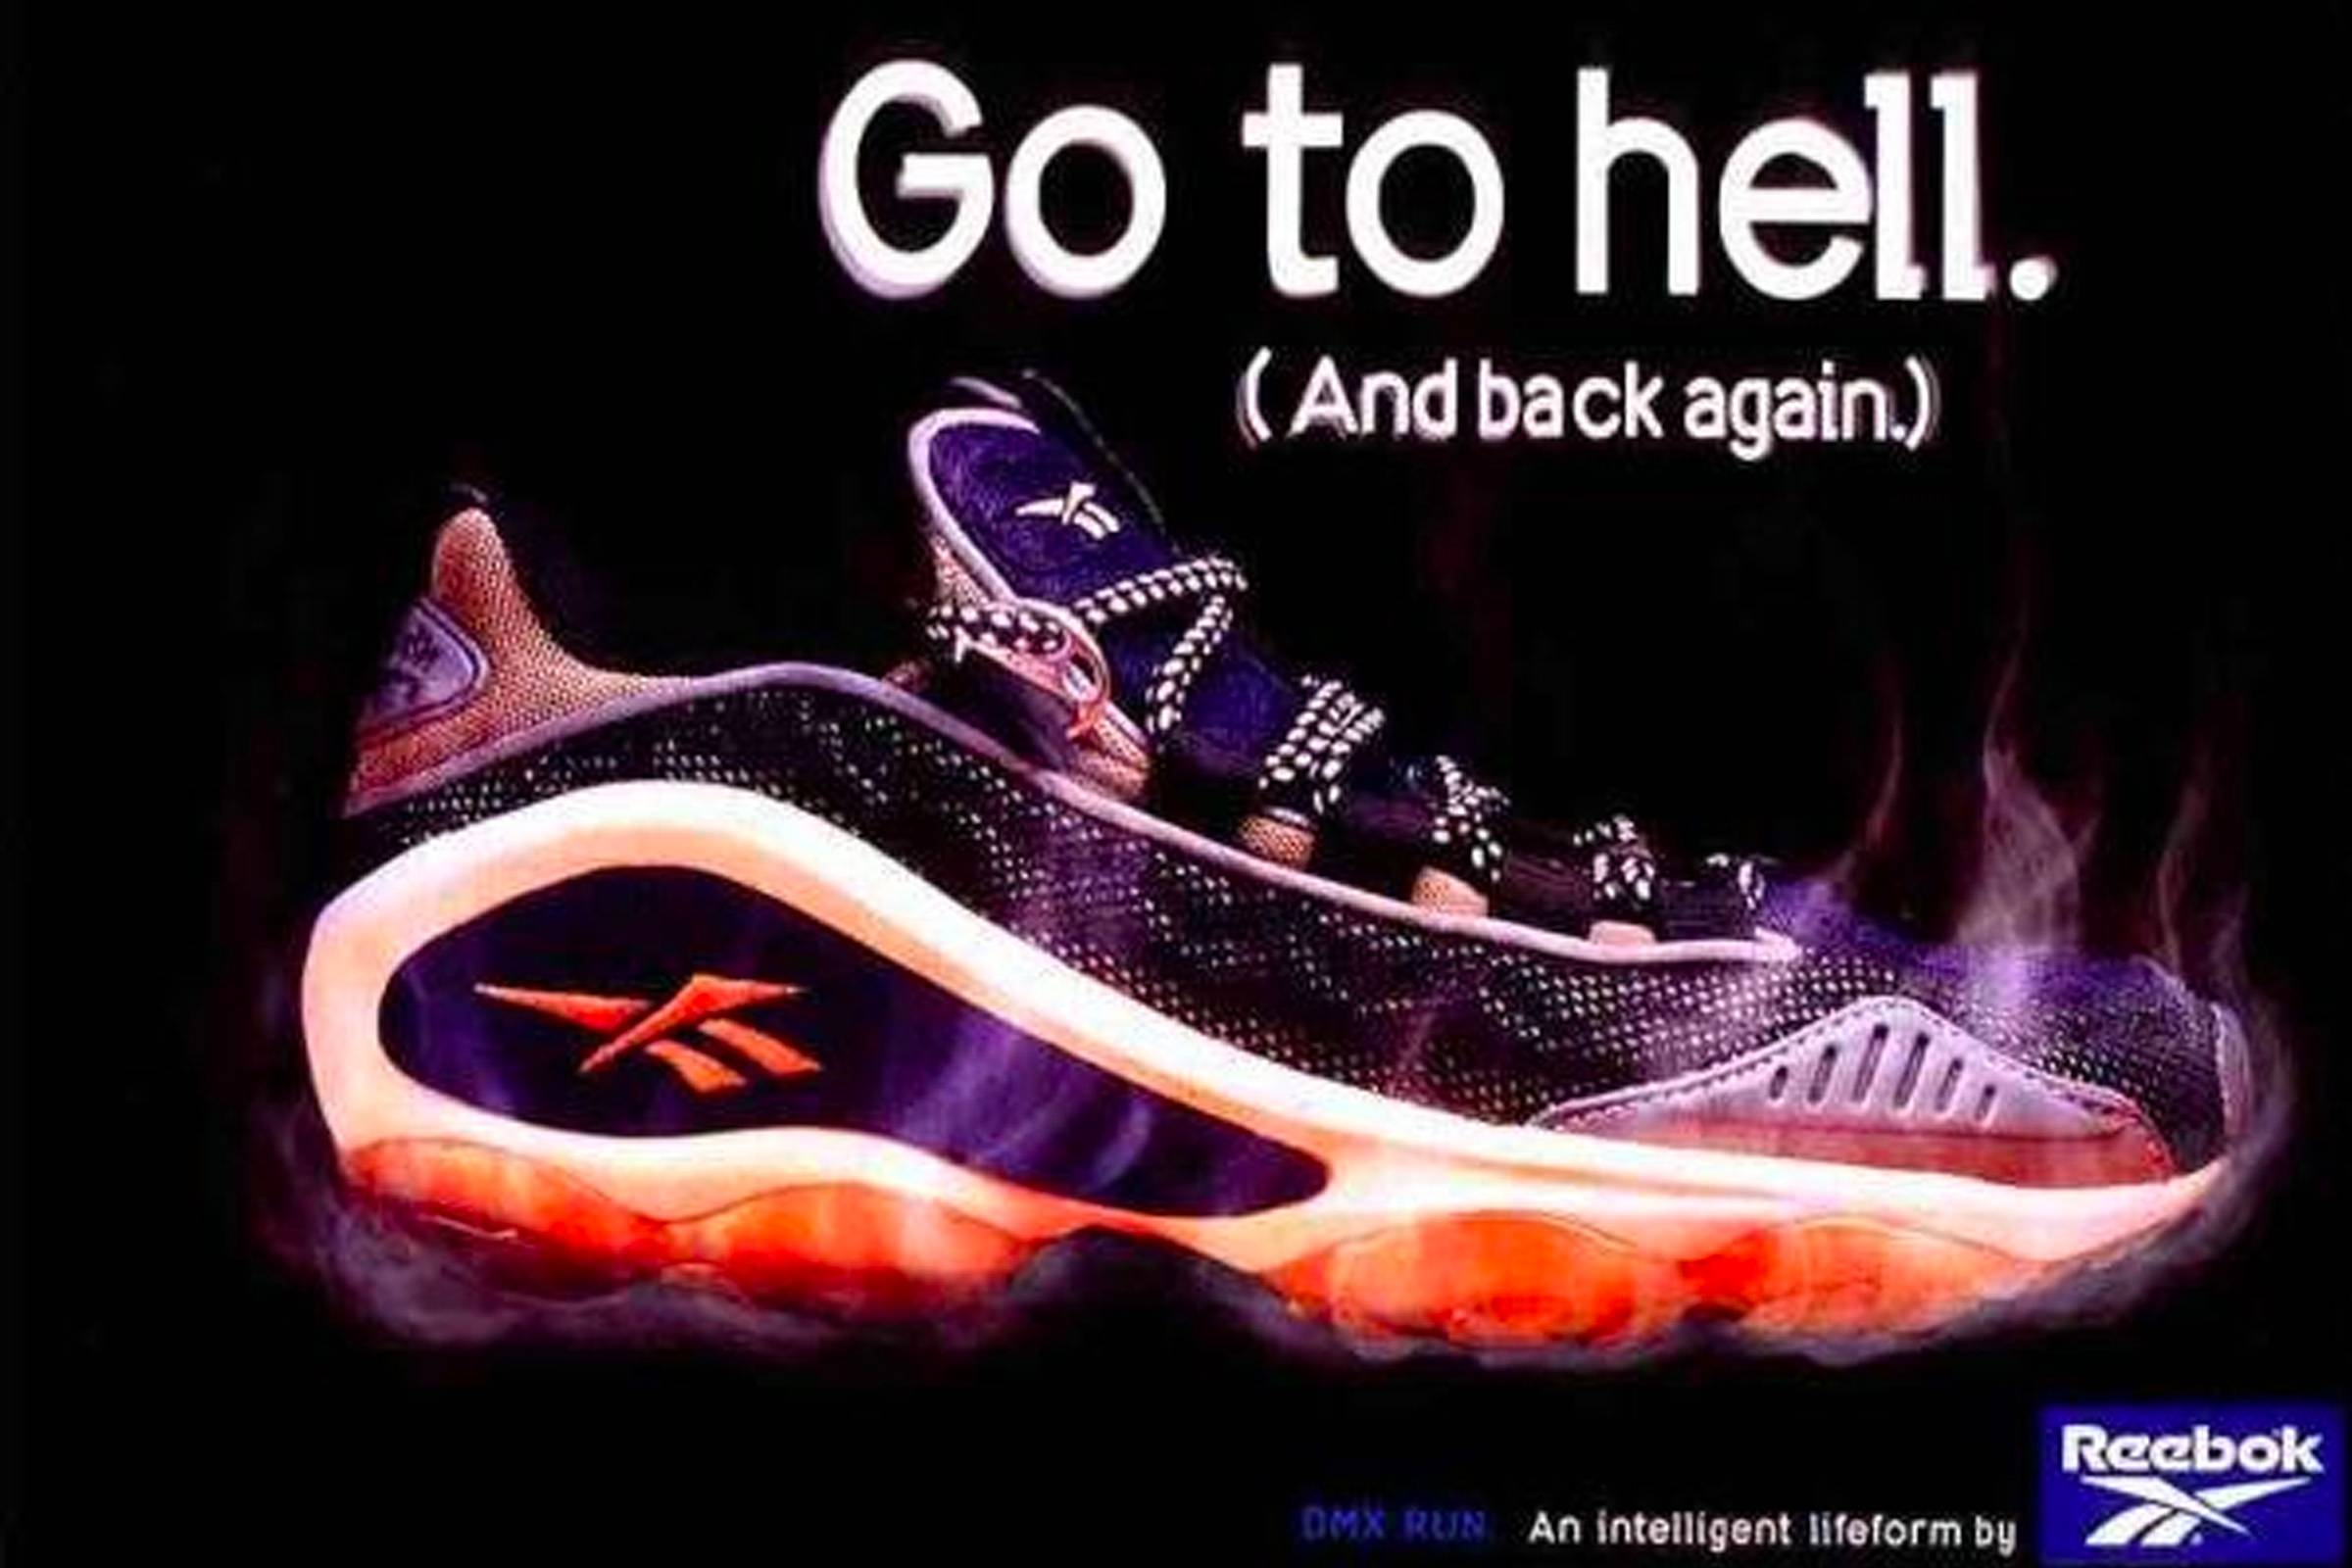 An ad for Reebok DMX technology